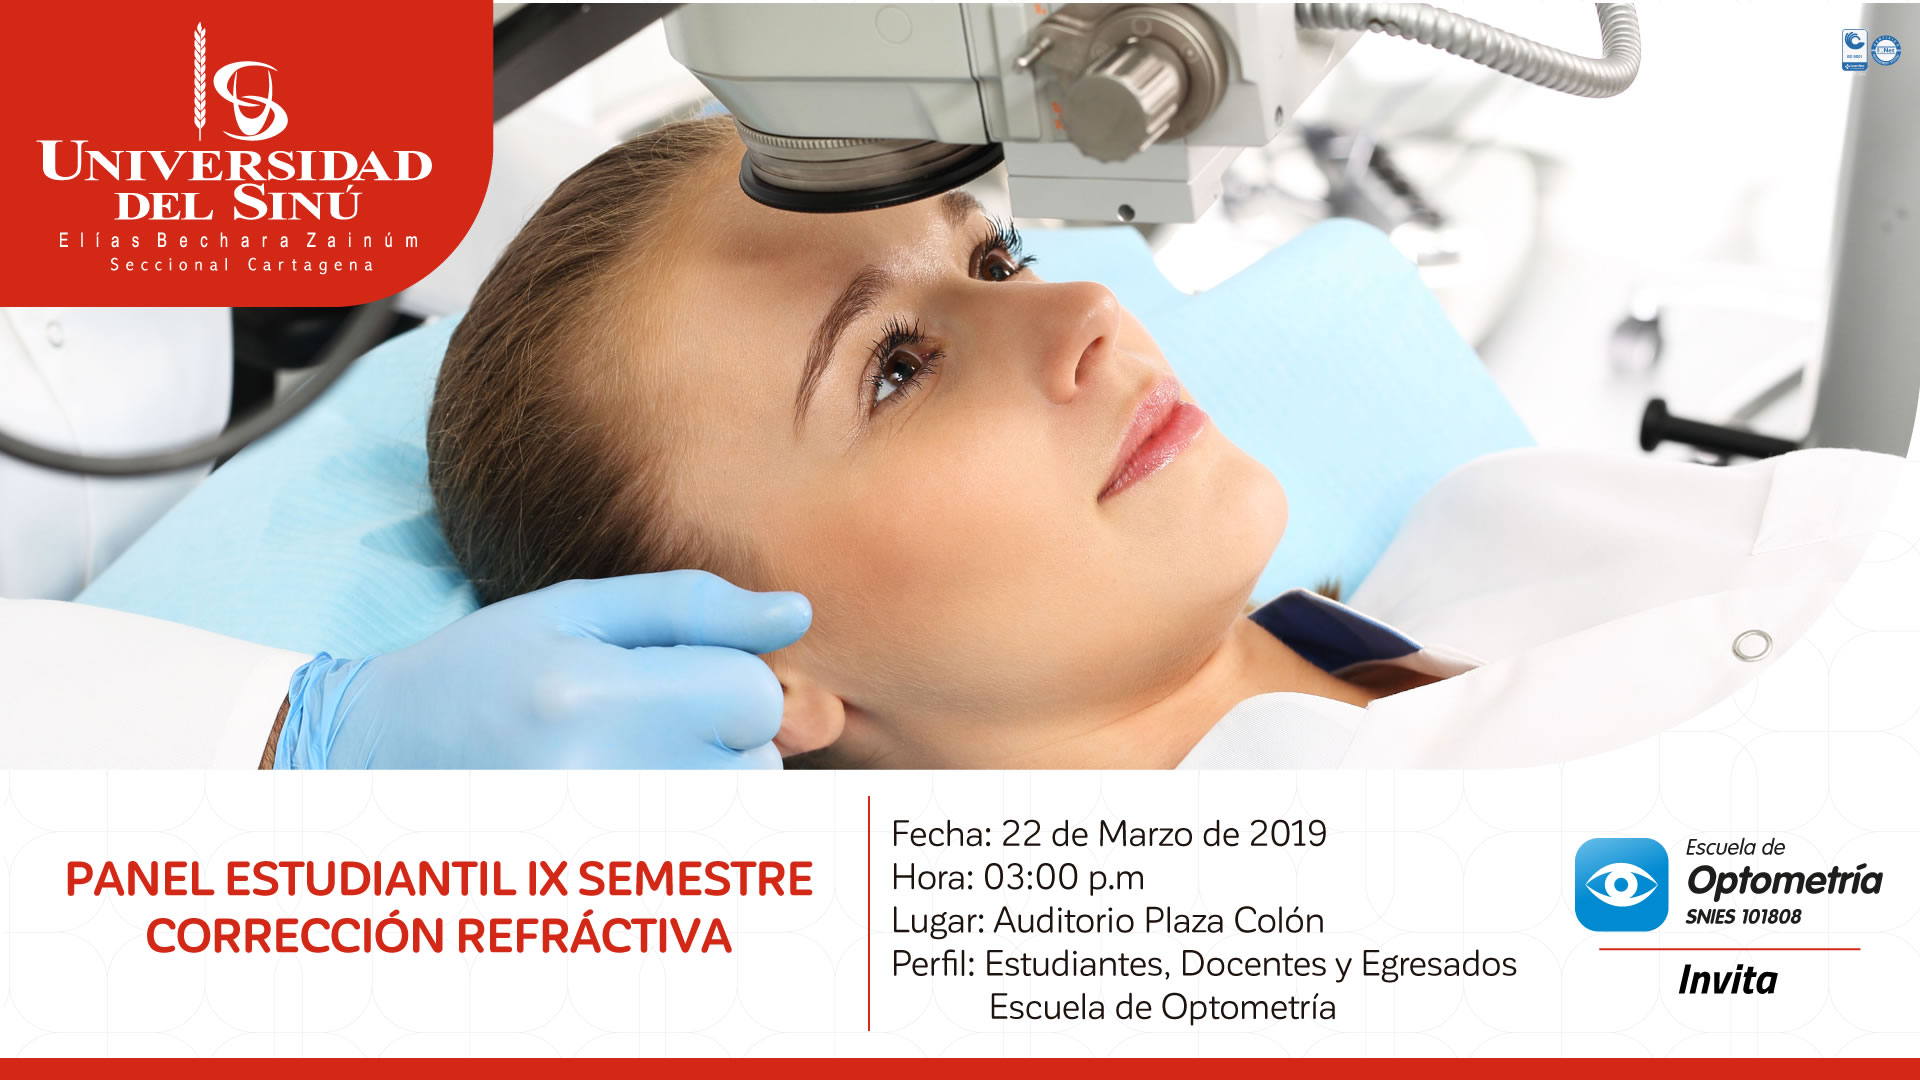 evento-optometria-2019-1p-2